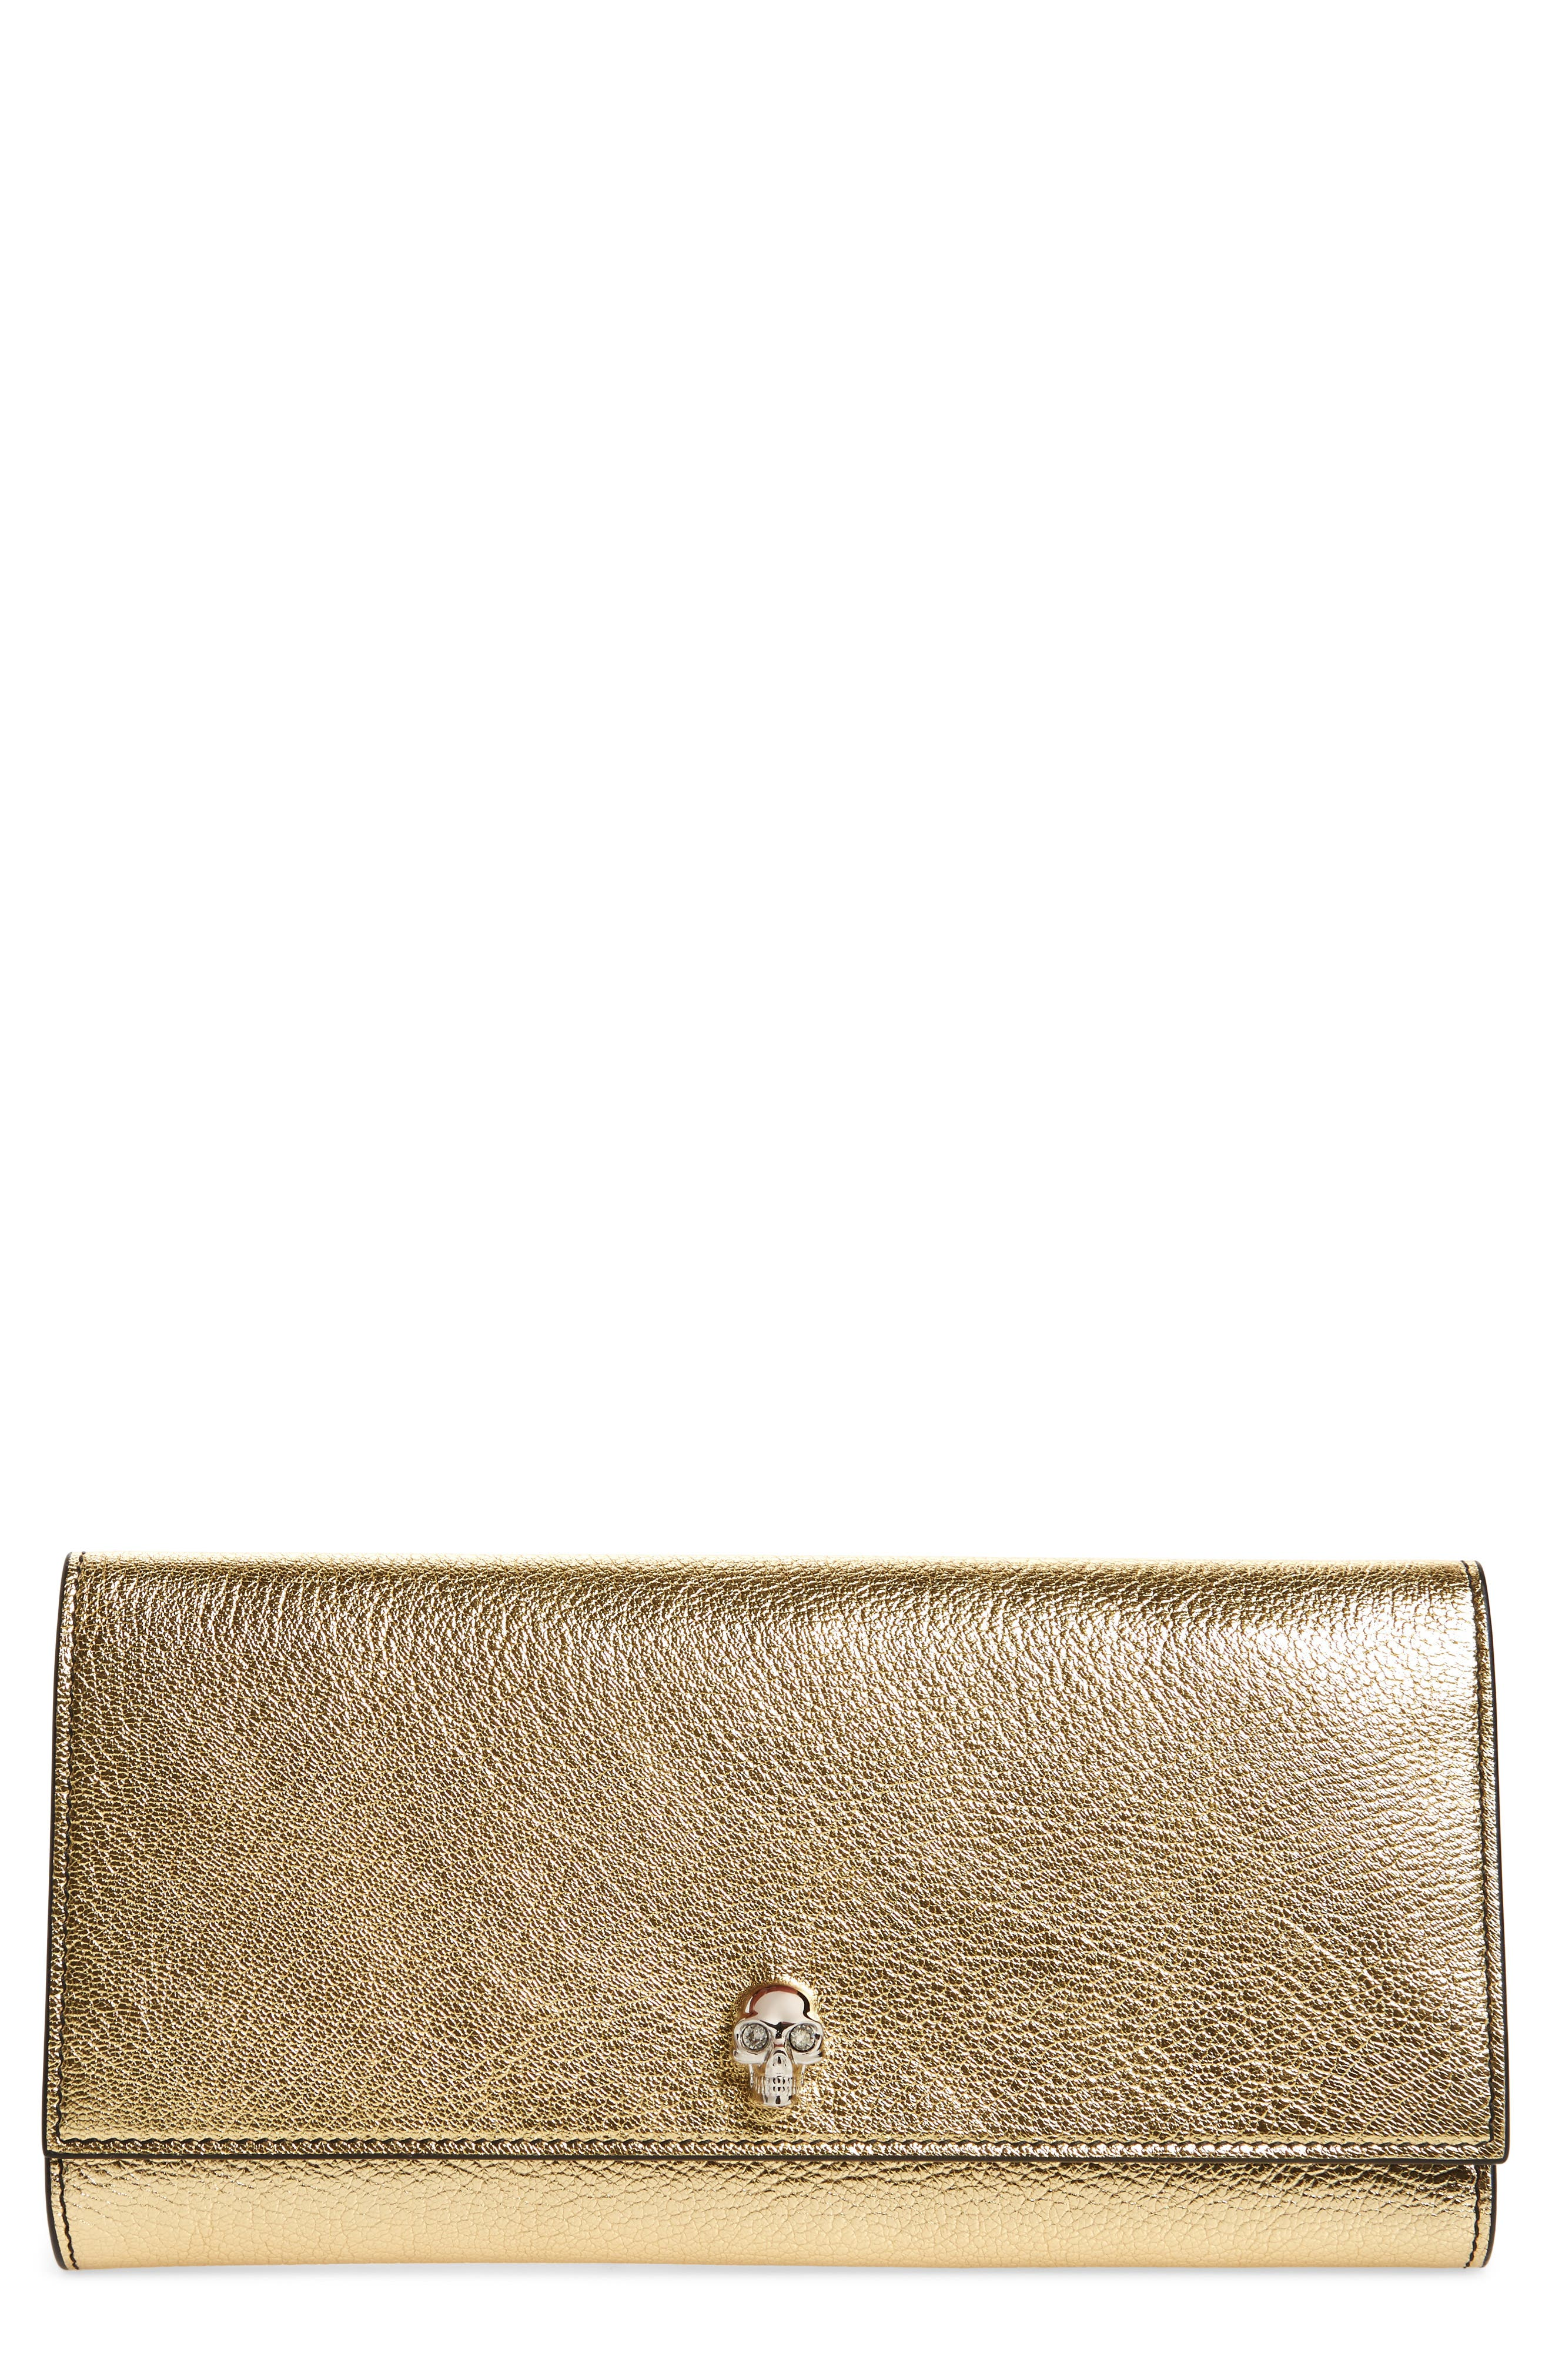 Leather Travel Wallet,                         Main,                         color, Sahara Gold